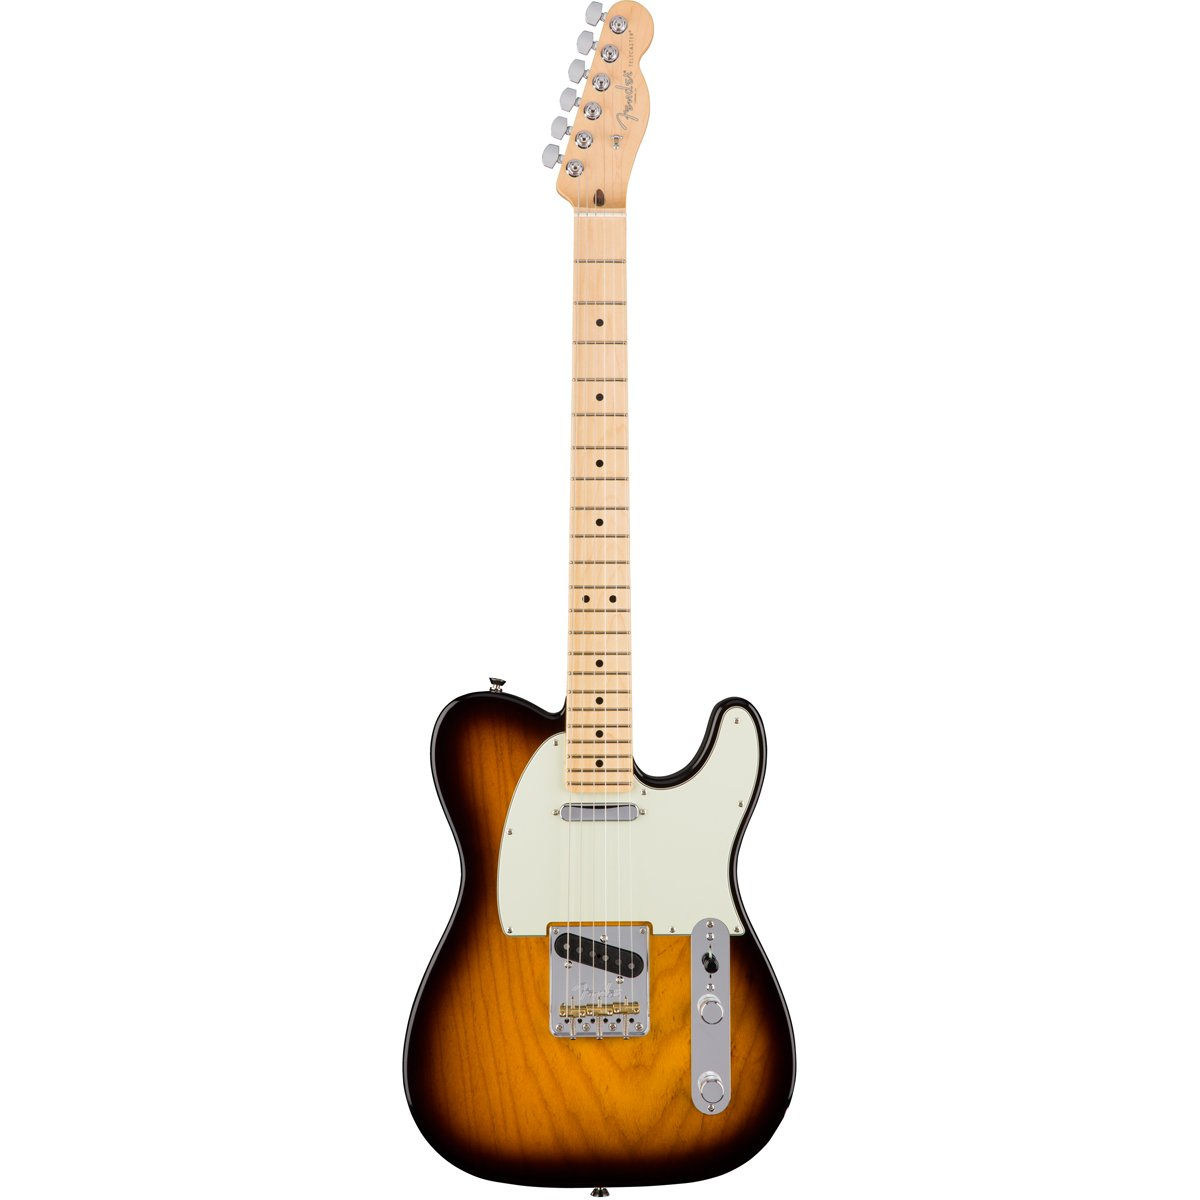 Fender American Pro Telecaster - Maple - 2-Tone Sunburst (Ash) | Lucky Fret Music Co.